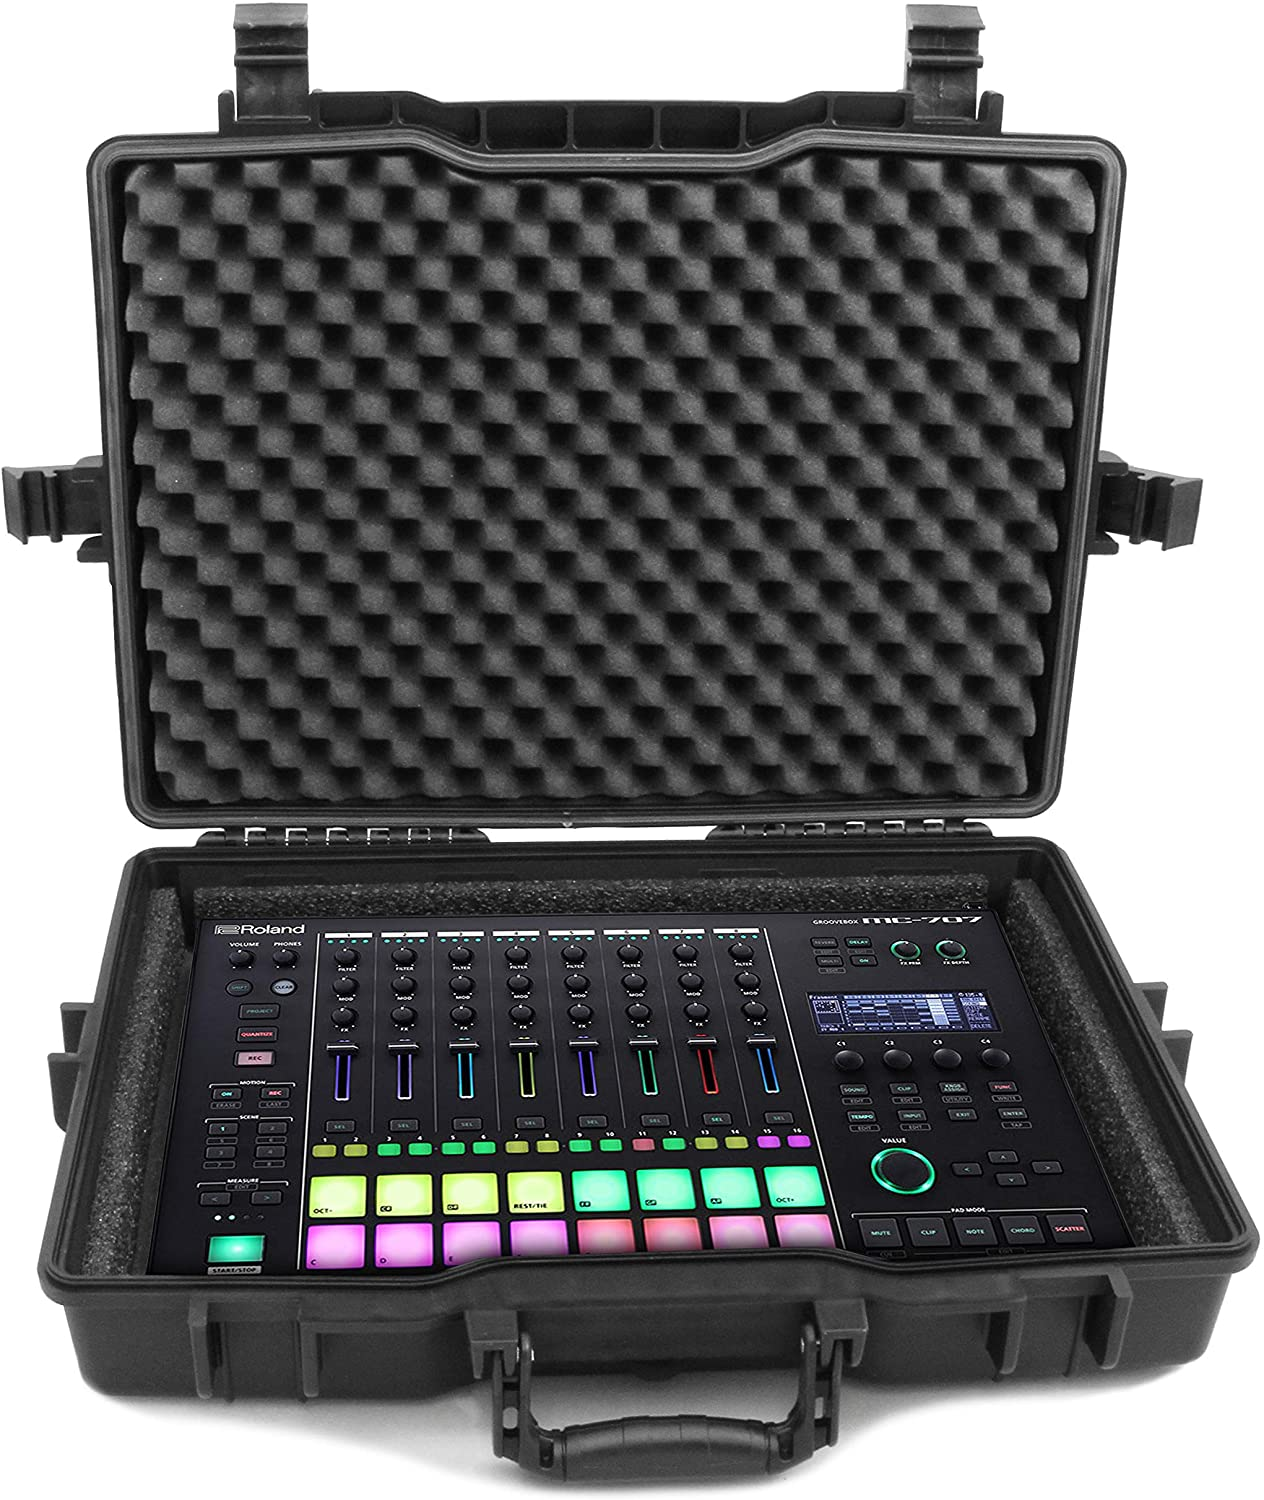 Casematix Elite Rugged Pad, Synthesizer and Mixer Case with Foam Compatible with MC-707, TR-8S, TR-8, MX-1, Peak, MPC Live, MPD232, APC40 MKII and Accessories